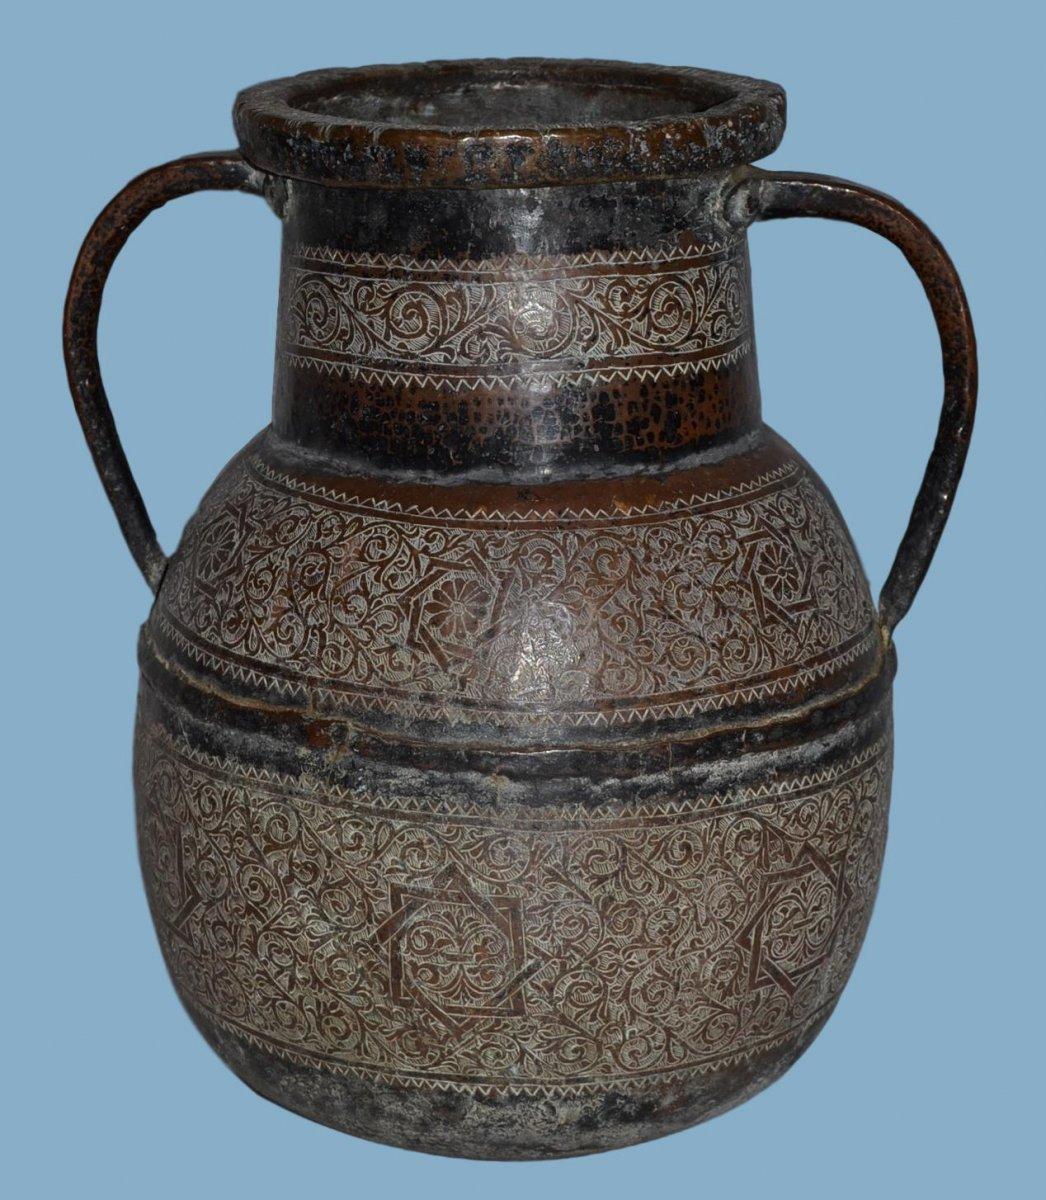 Large Vase With 2 Handles, Iran, Art From Persia, From The XIXth Century